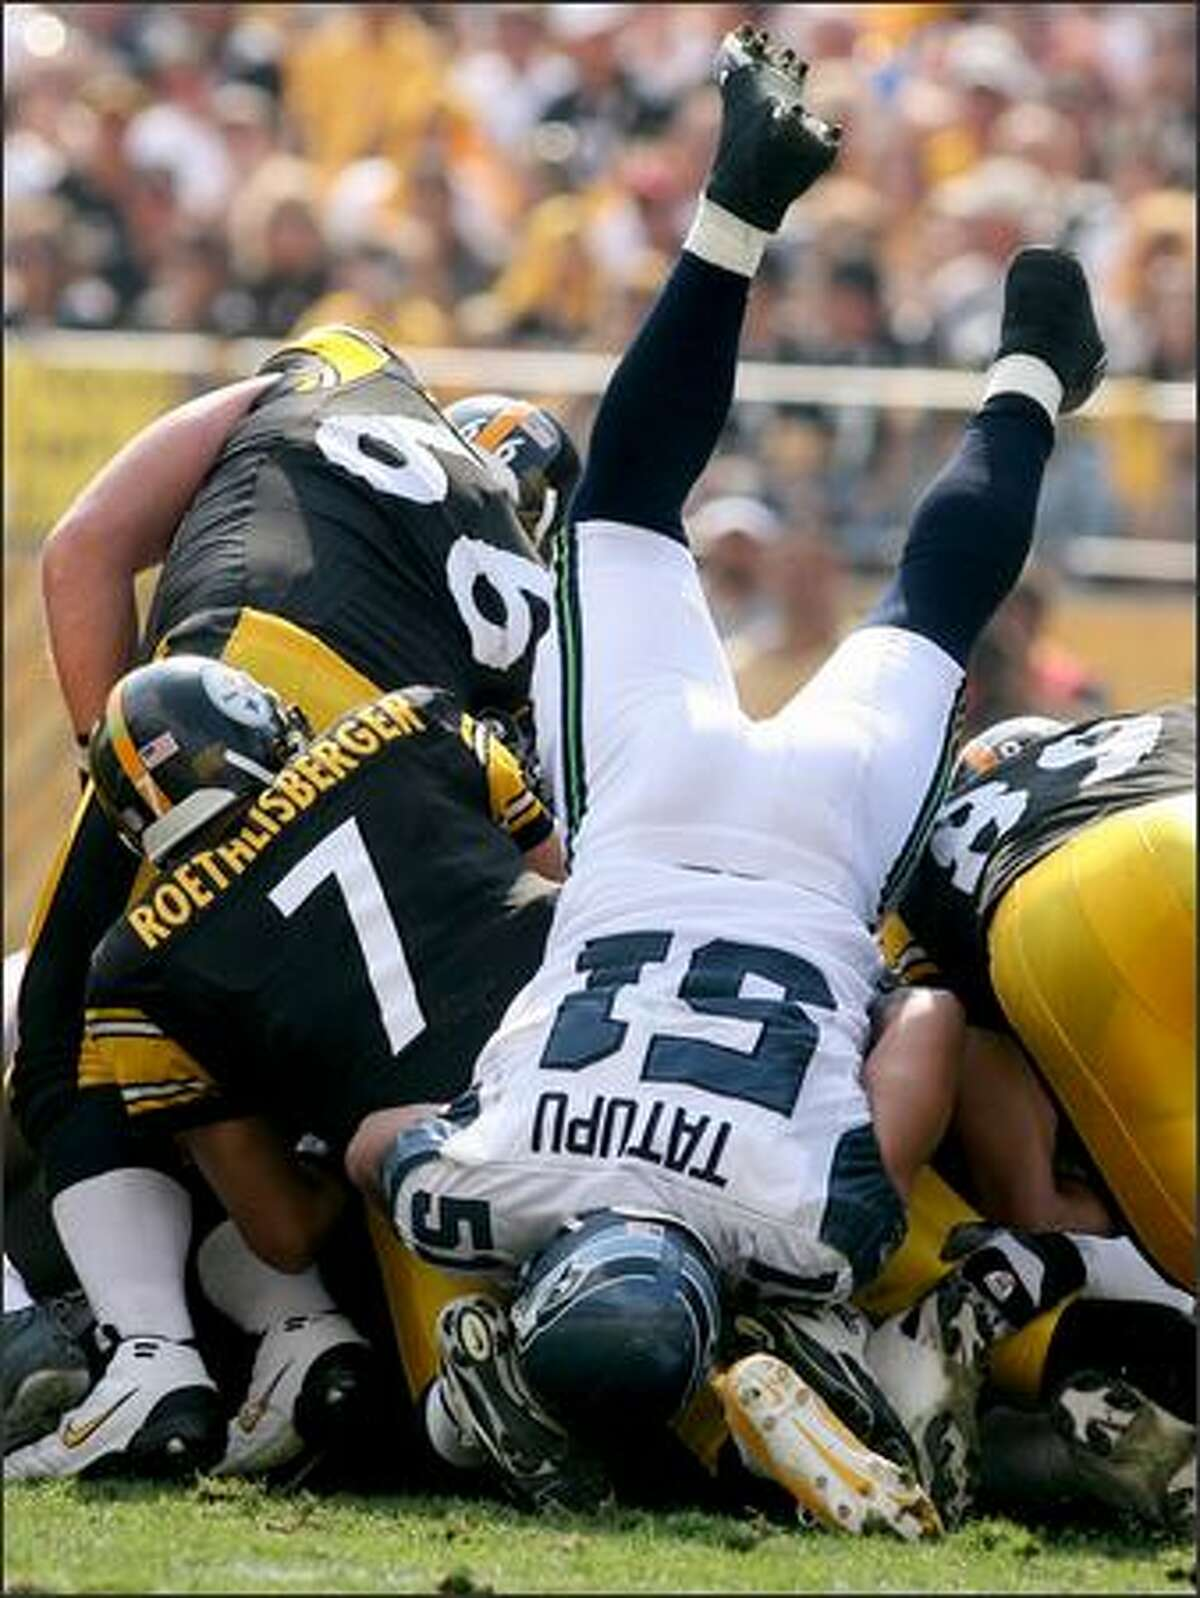 Seahawks linebacker Lofa Tatupu dives over the pile but is unable to stop Steelers quarterback Ben Roethlisberger on a third and short in the first half.